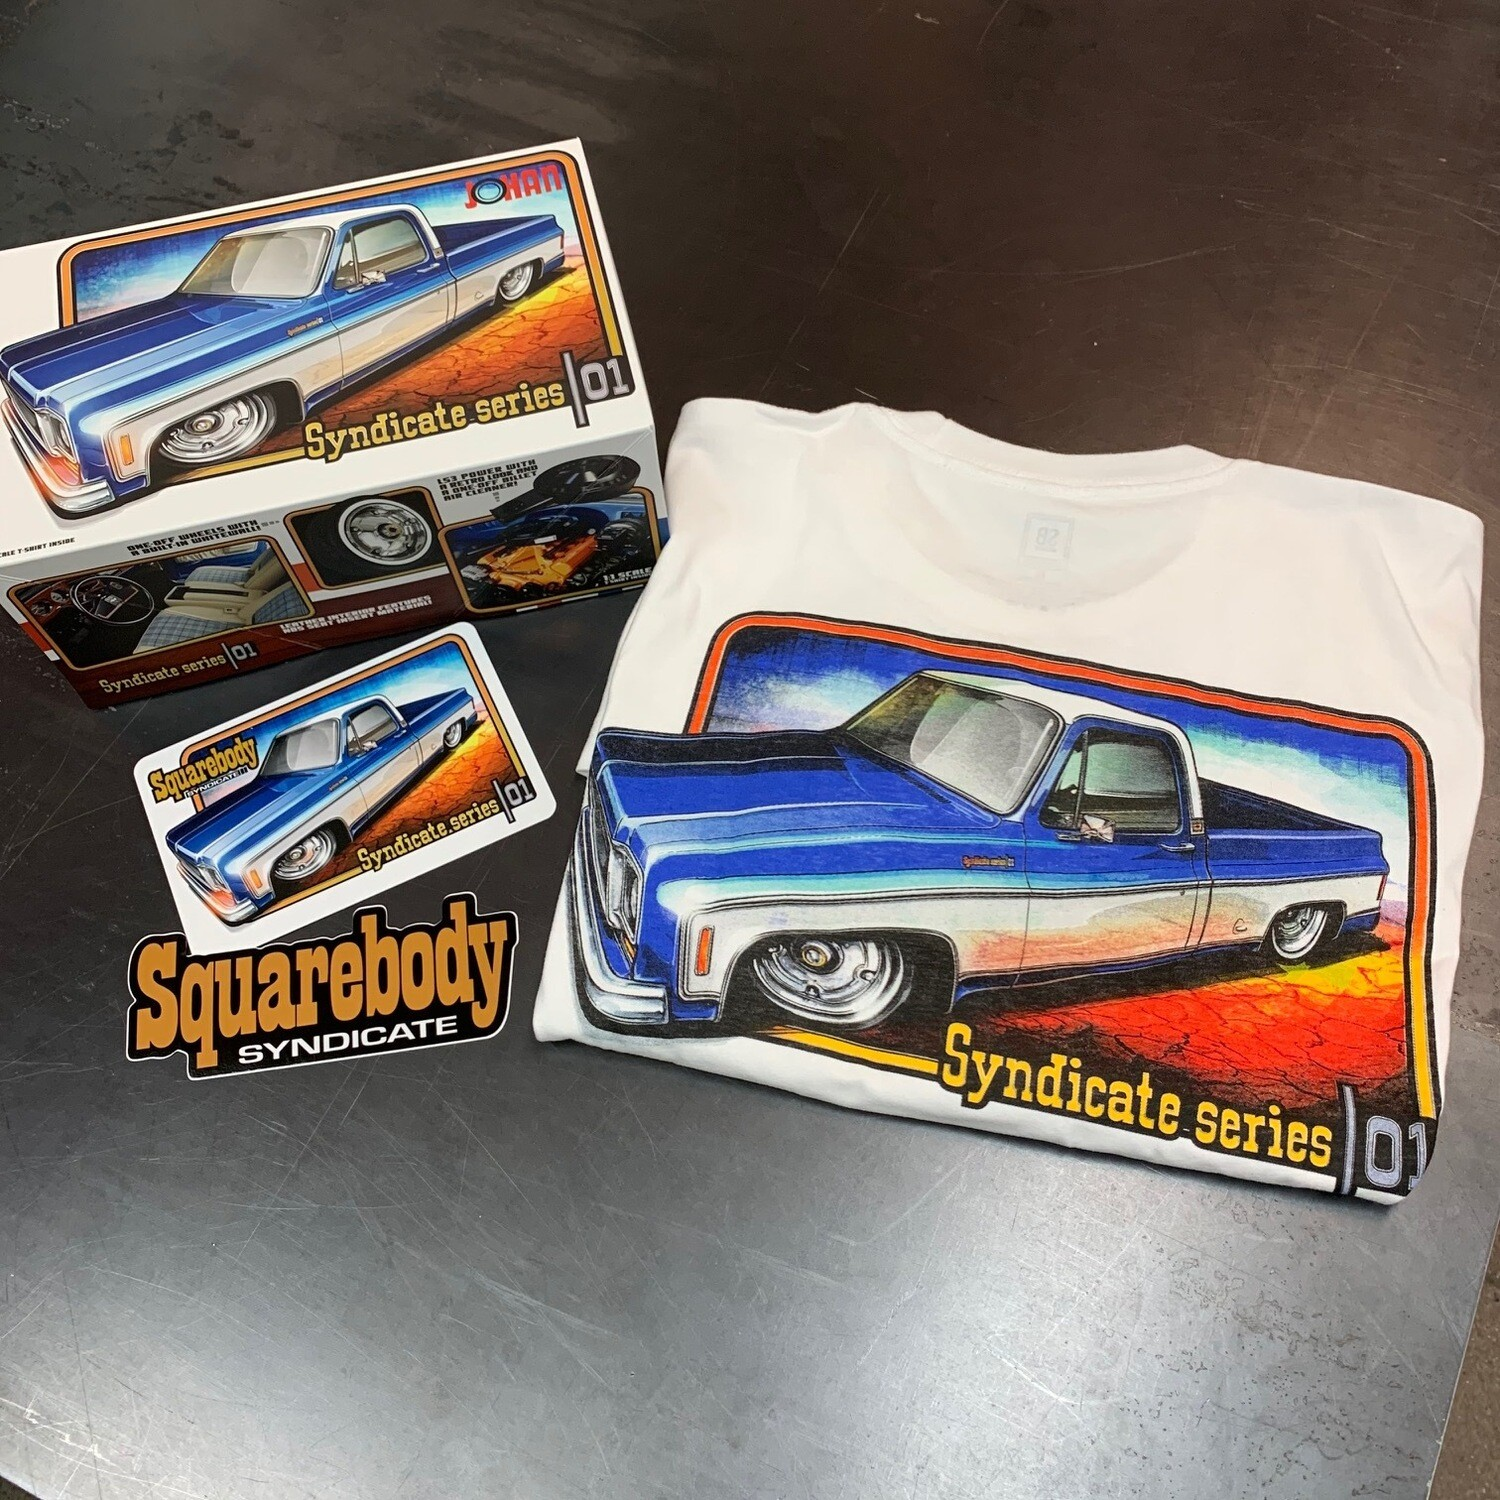 SS01 LIMITED EDITION shirt and decal pack